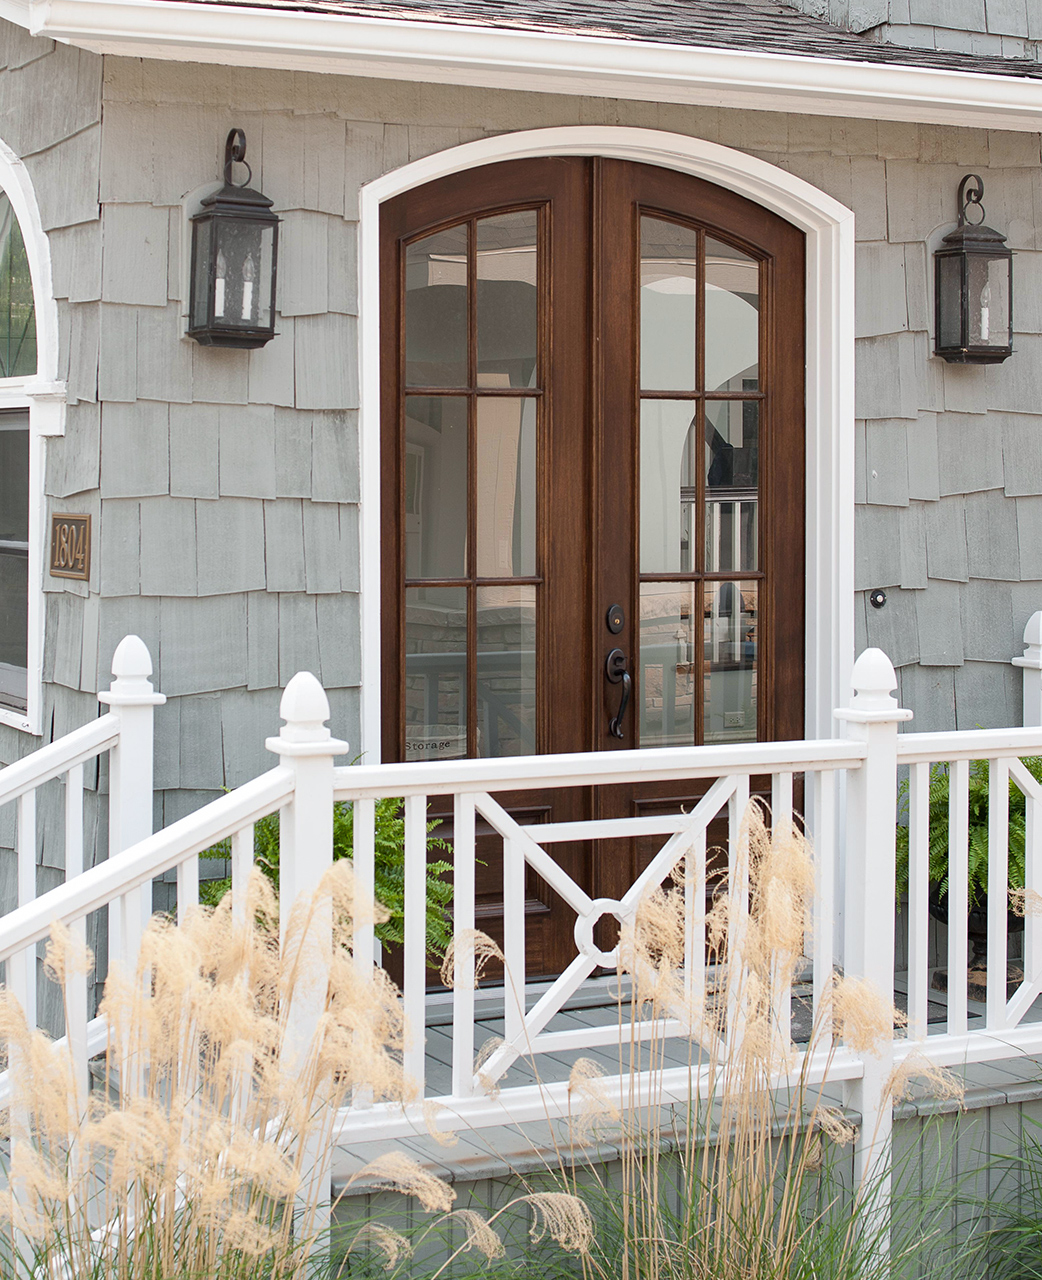 29 Creative Deck Railing Ideas to Update Your Outdoor Space